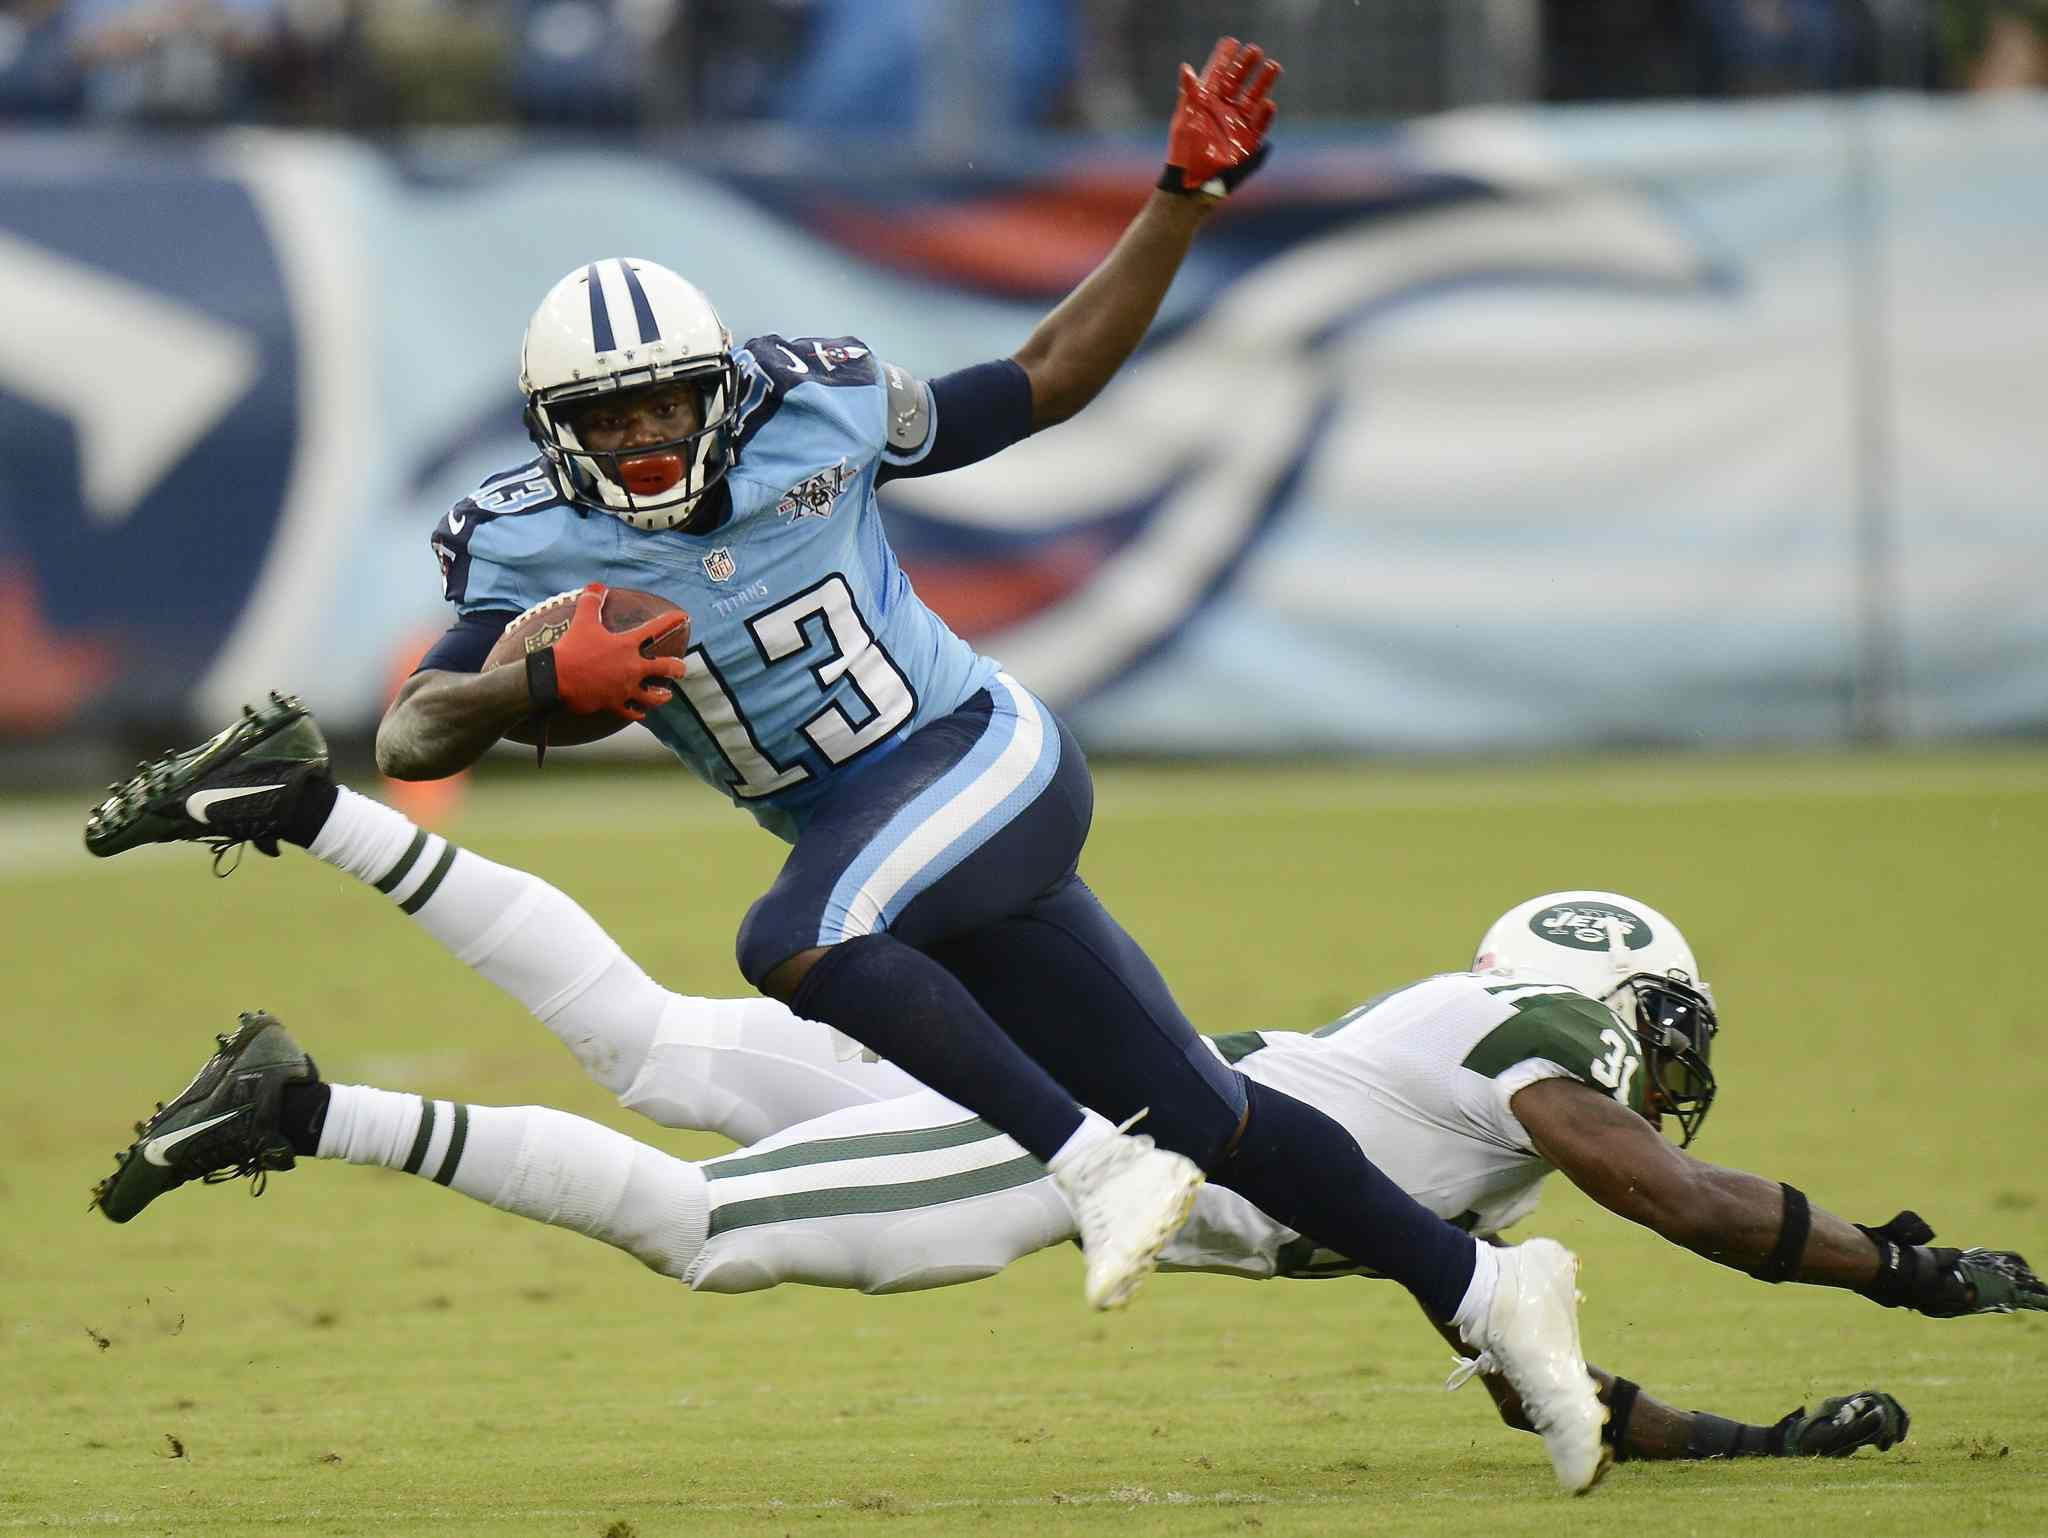 Tennessee Titans wide receiver Kendall Wright gets past New York Jets cornerback Antonio Cromartie during the Titans 38-13 victory, Sunday in Nashville.